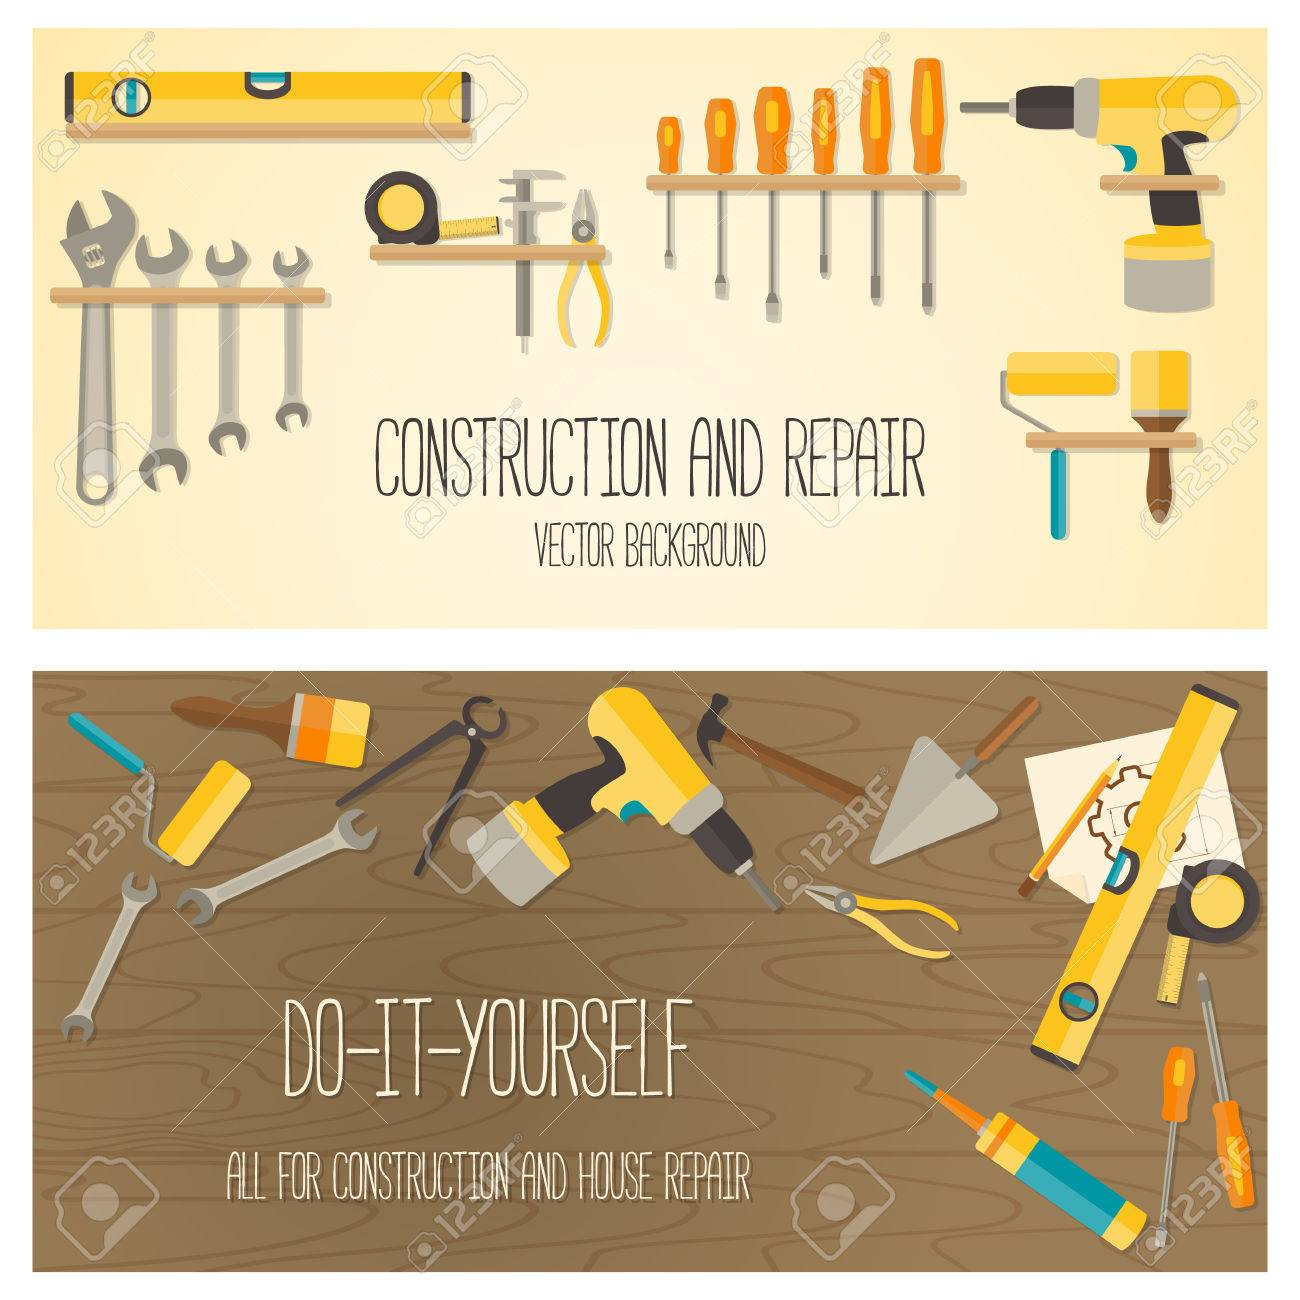 Web banner concept of diy shop vector flat design background vector web banner concept of diy shop vector flat design background with construction tools and home repair kit solutioingenieria Image collections